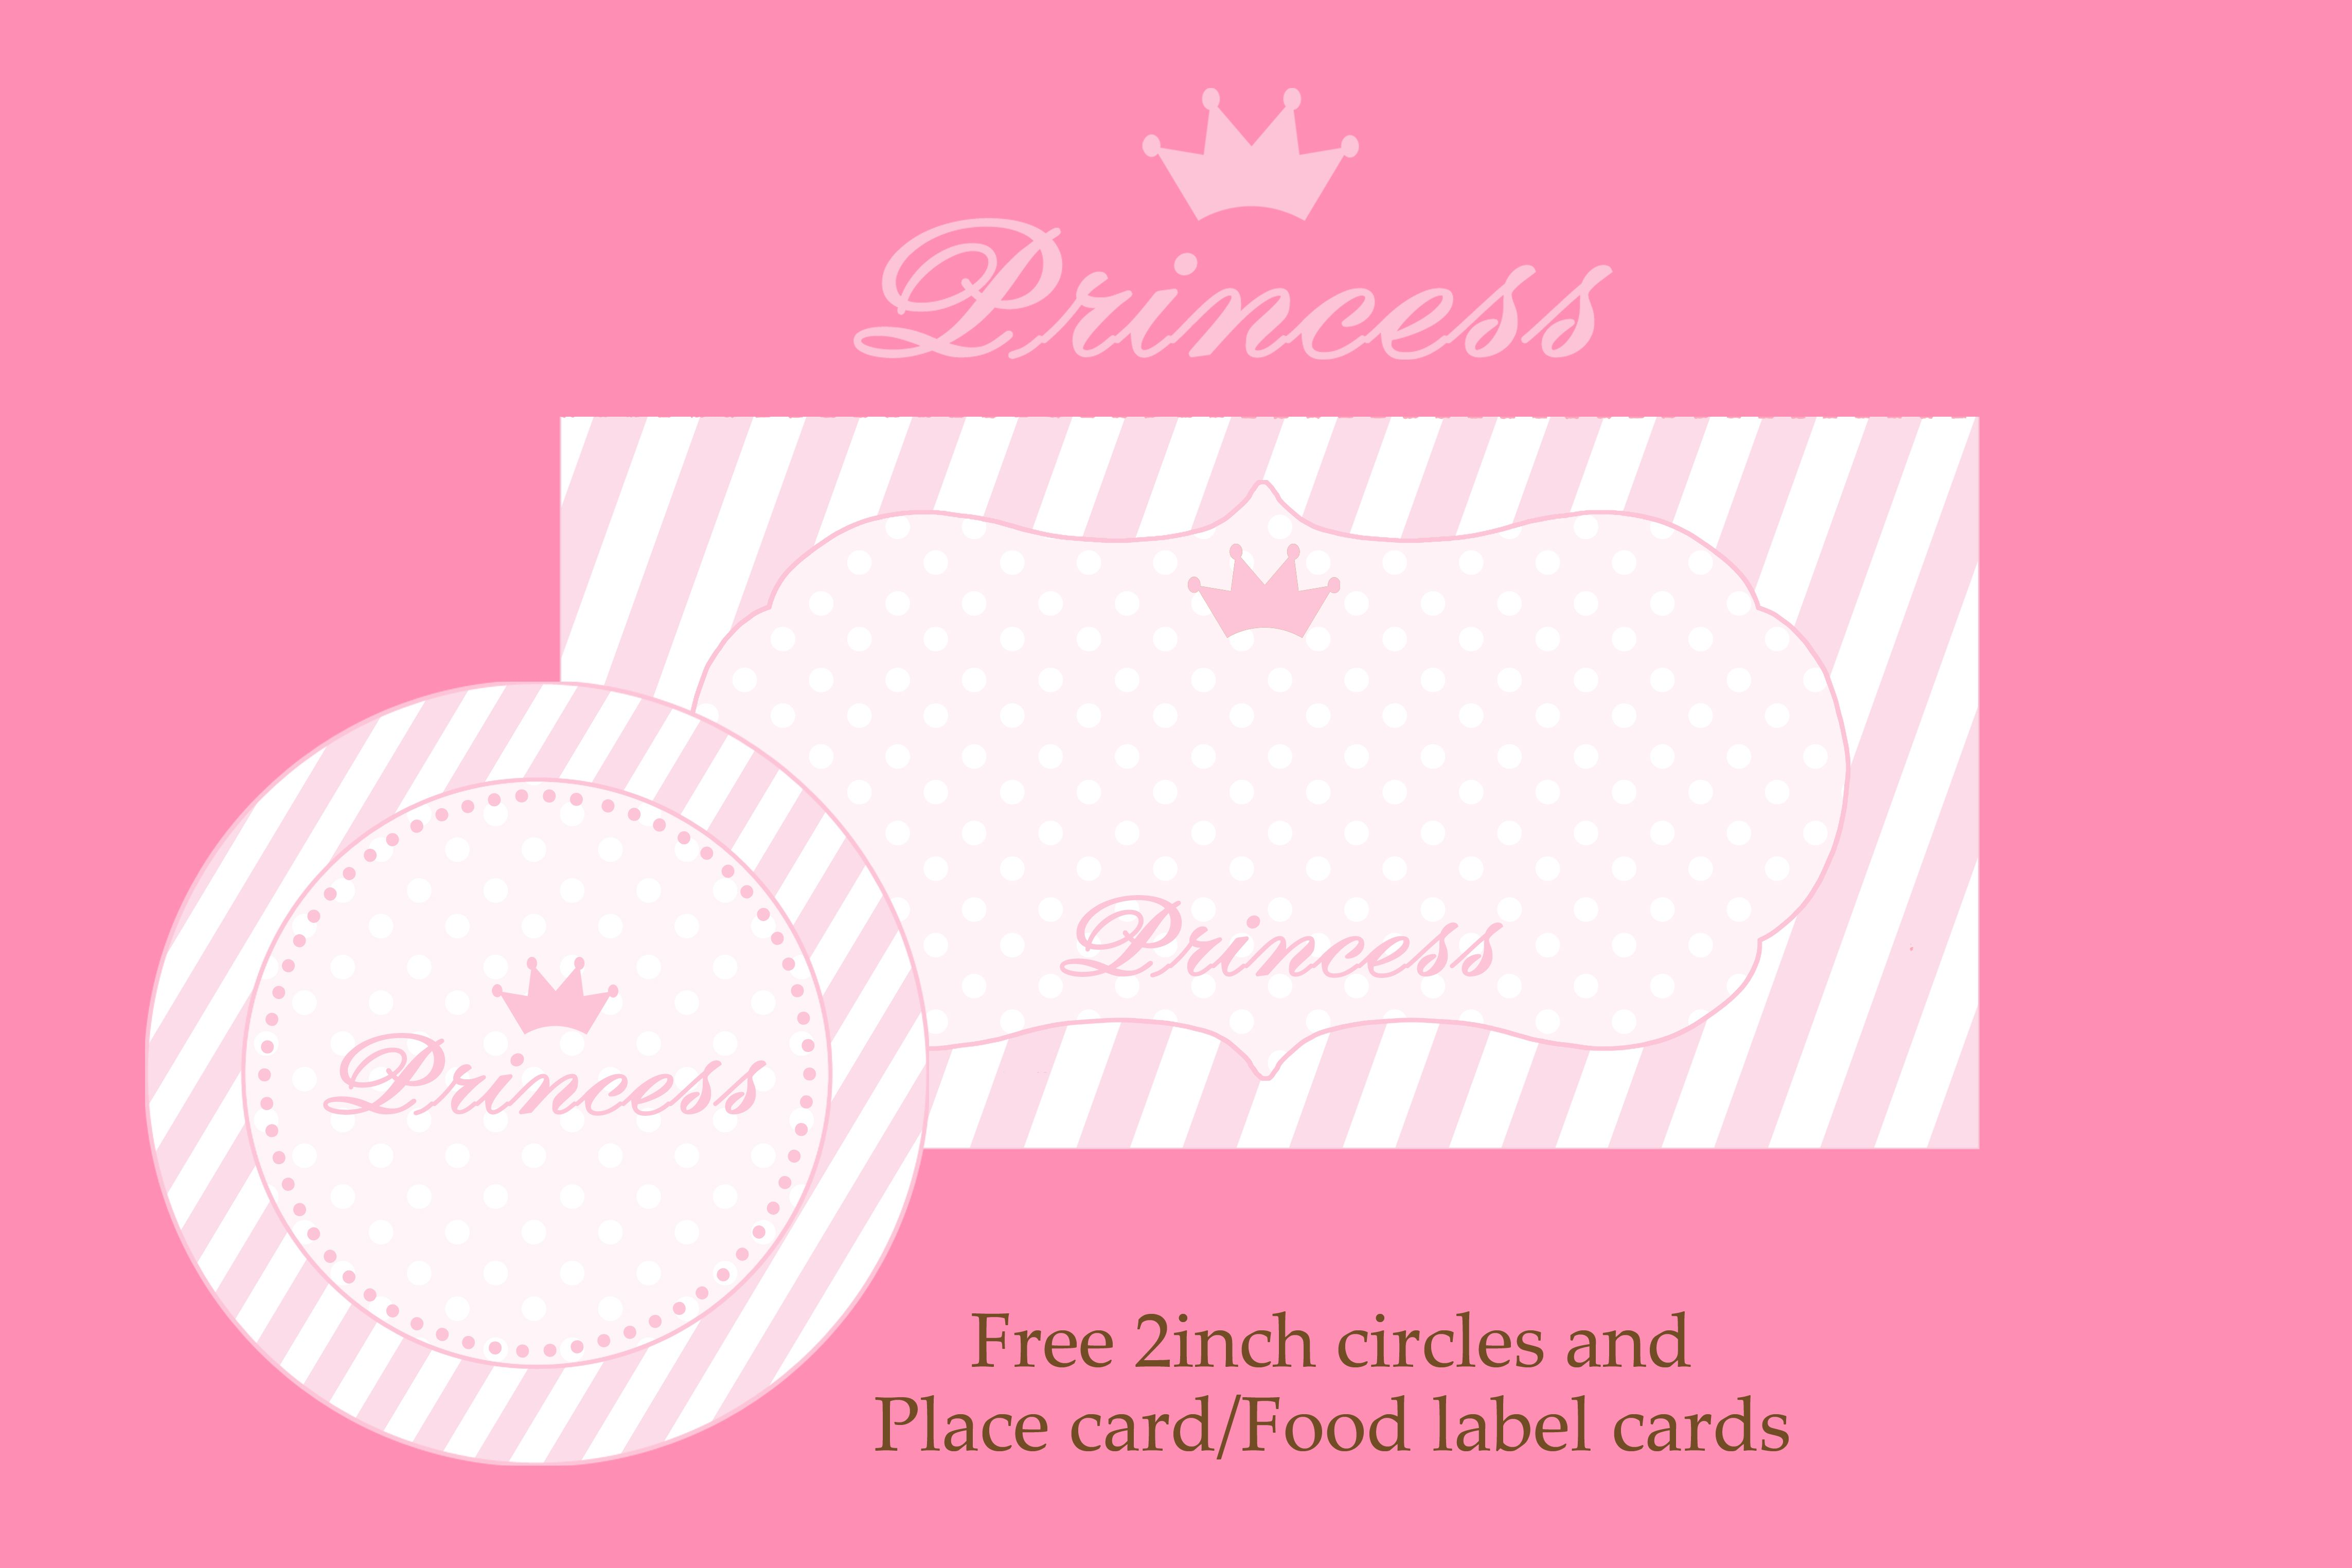 Princess Party Free Download For 2 Inch Circles And Place Cards Food Label Cards